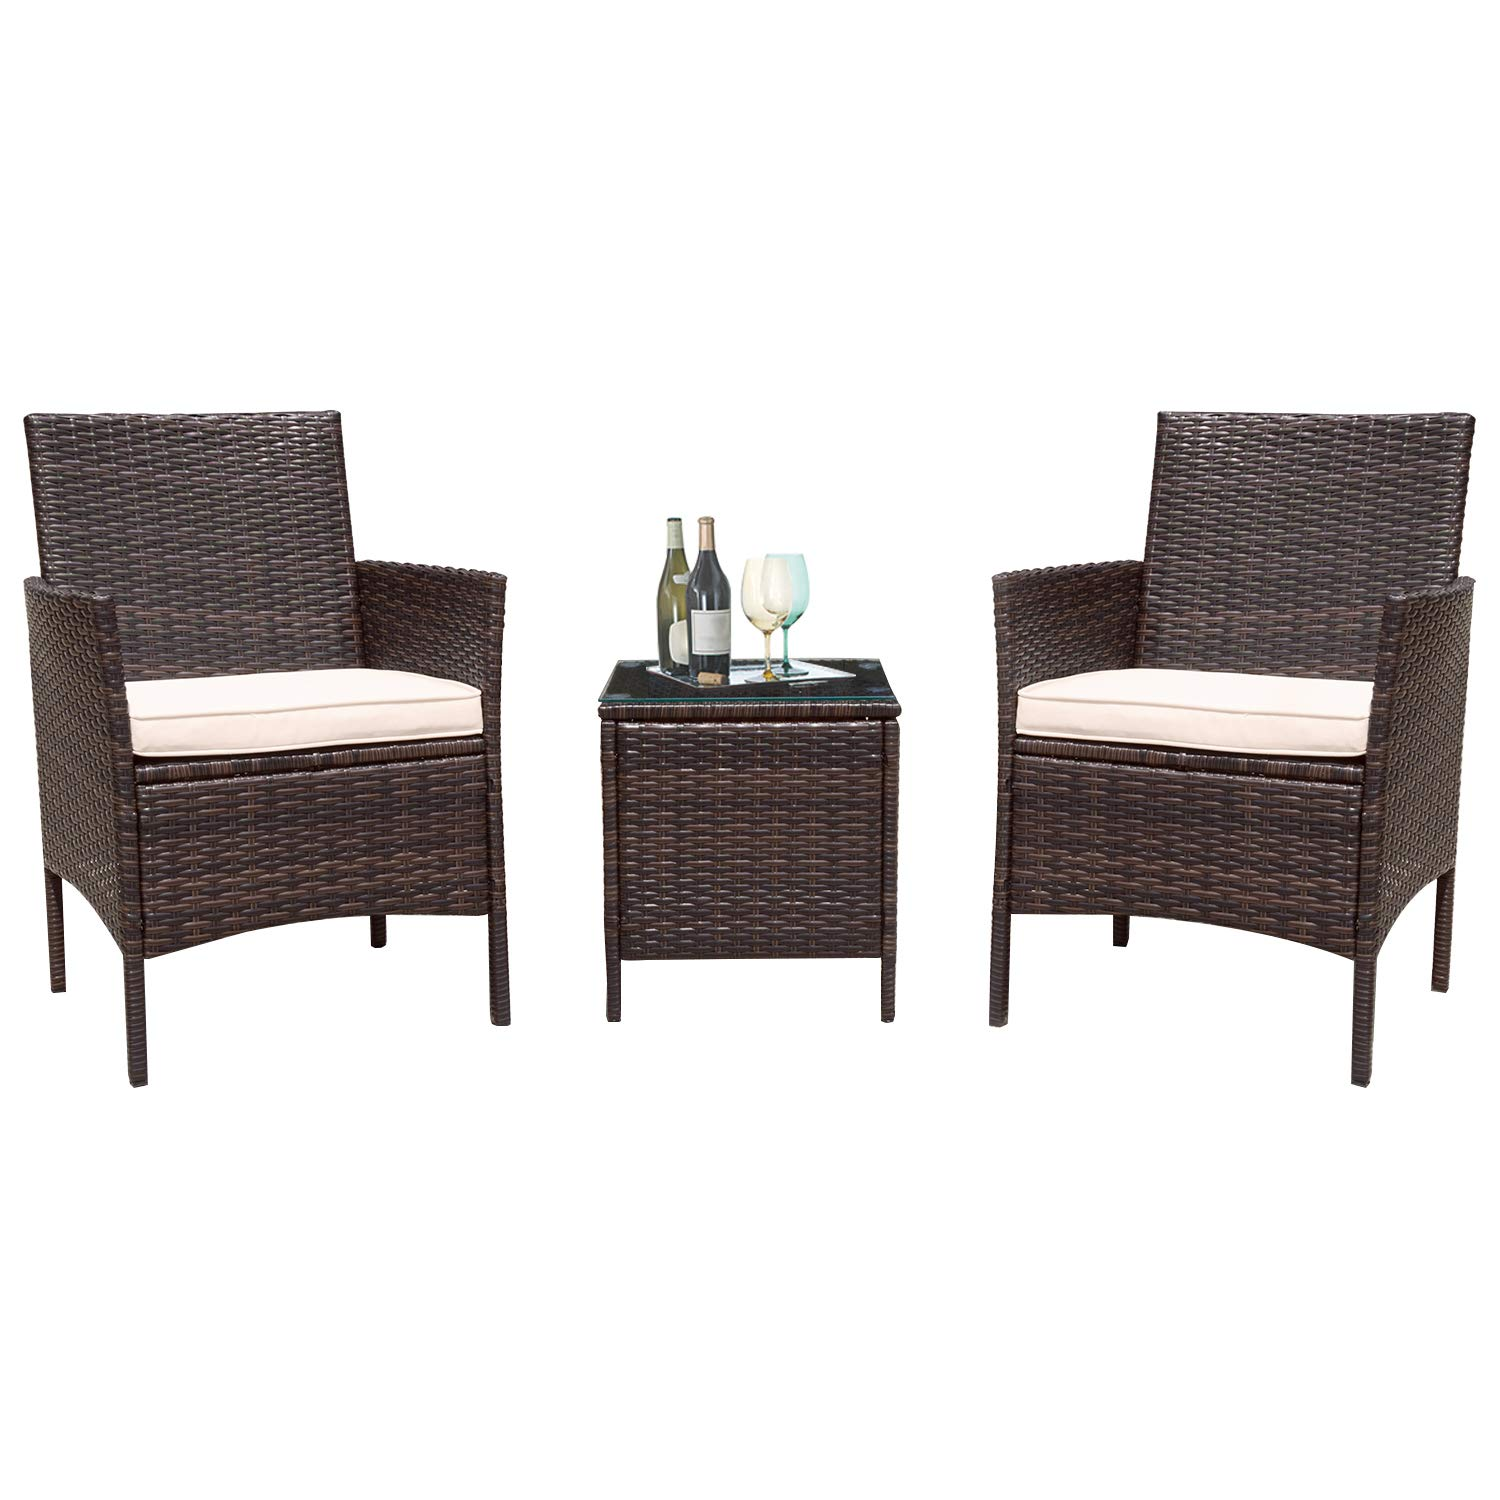 Flamaker 3 Pieces Patio Furniture Set Outdoor Furniture Sets Cushioned PE Wicker Bistro Set Rattan Chair Conversation Sets with Coffee Table (Brown) by Flamaker